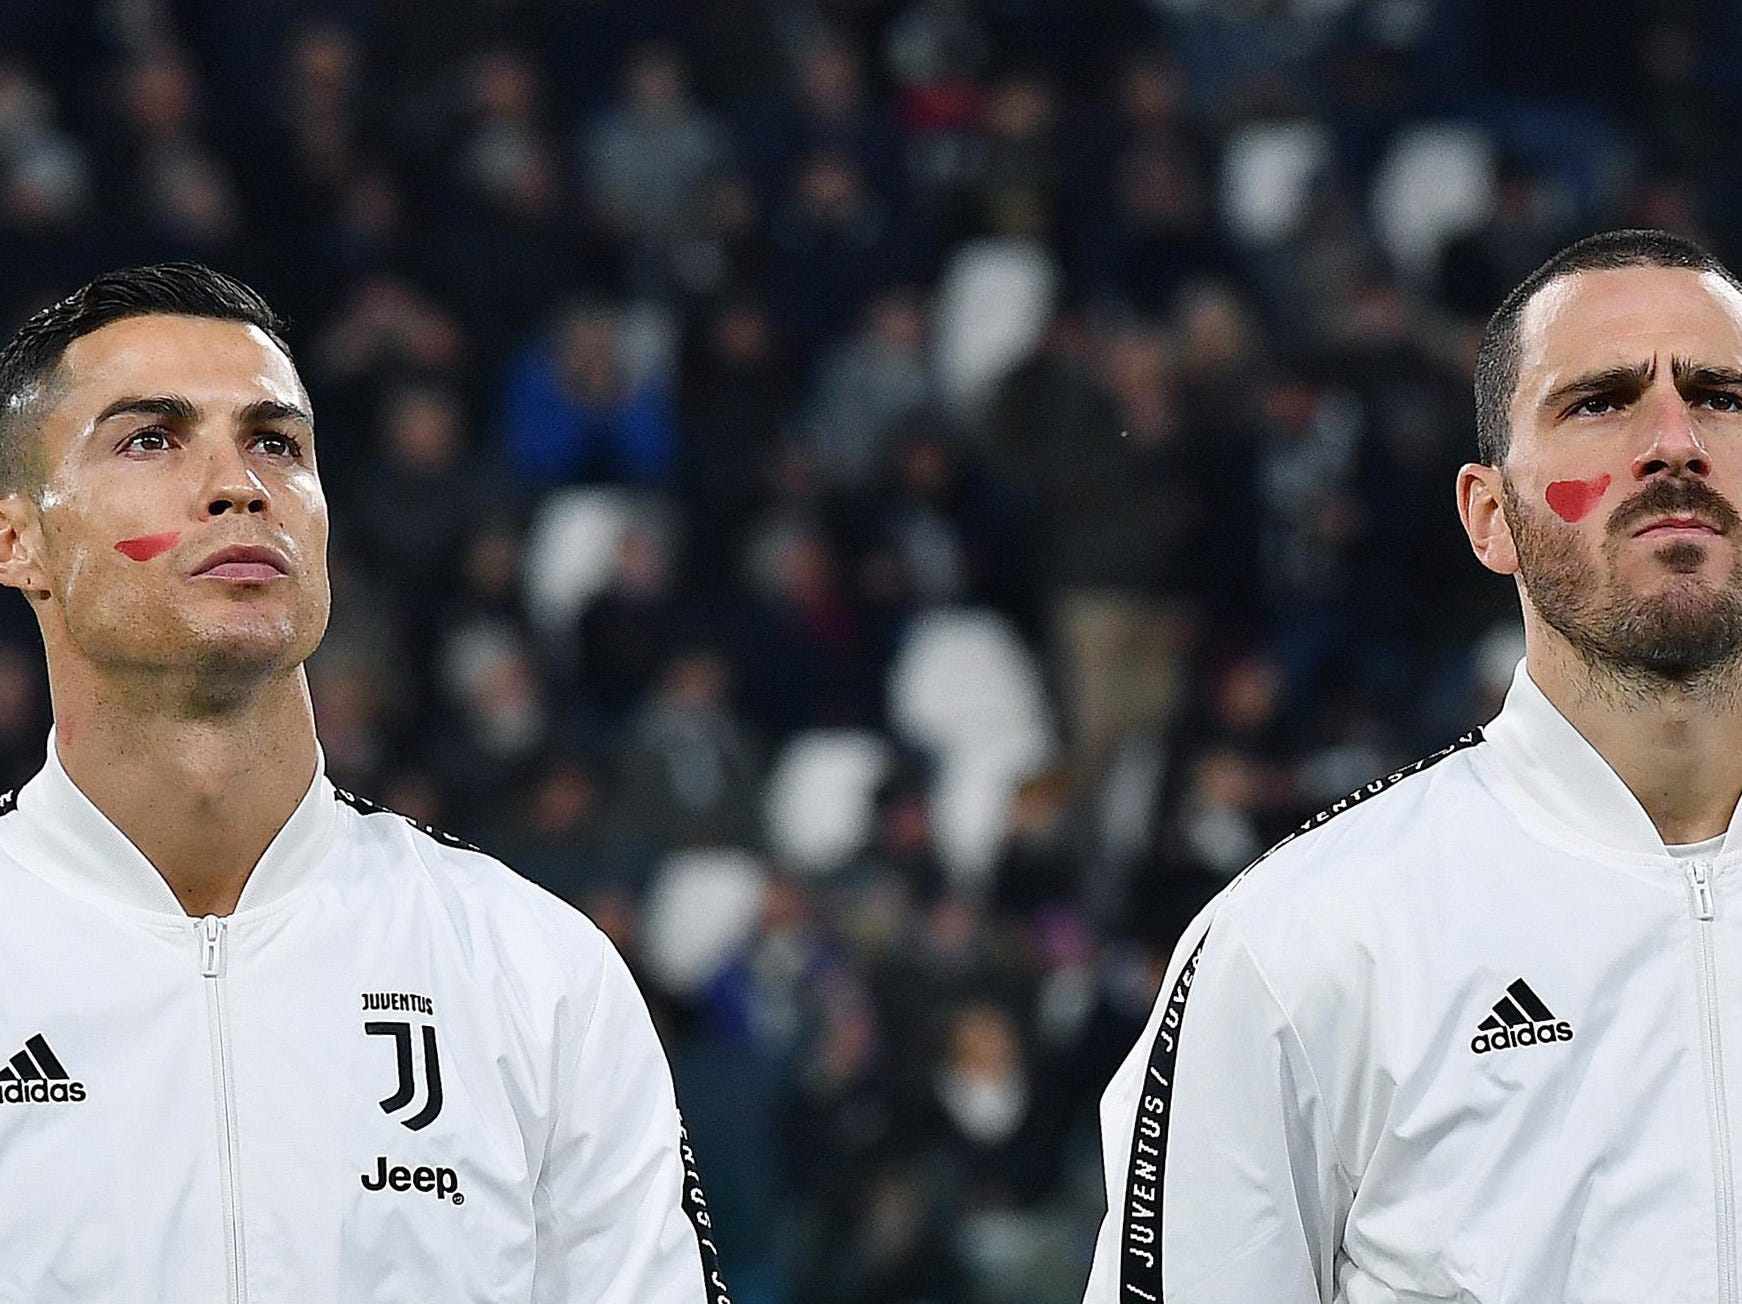 Juventus' players Leonardo Bonucci, right, and Cristiano Ronaldo wear a red sign on their faces on the occasion of the day against violence against women before the Italian Serie A soccer match Juventus FC vs Spal at the Allianz stadium in Turin, Italy on Nov. 24, 2018.